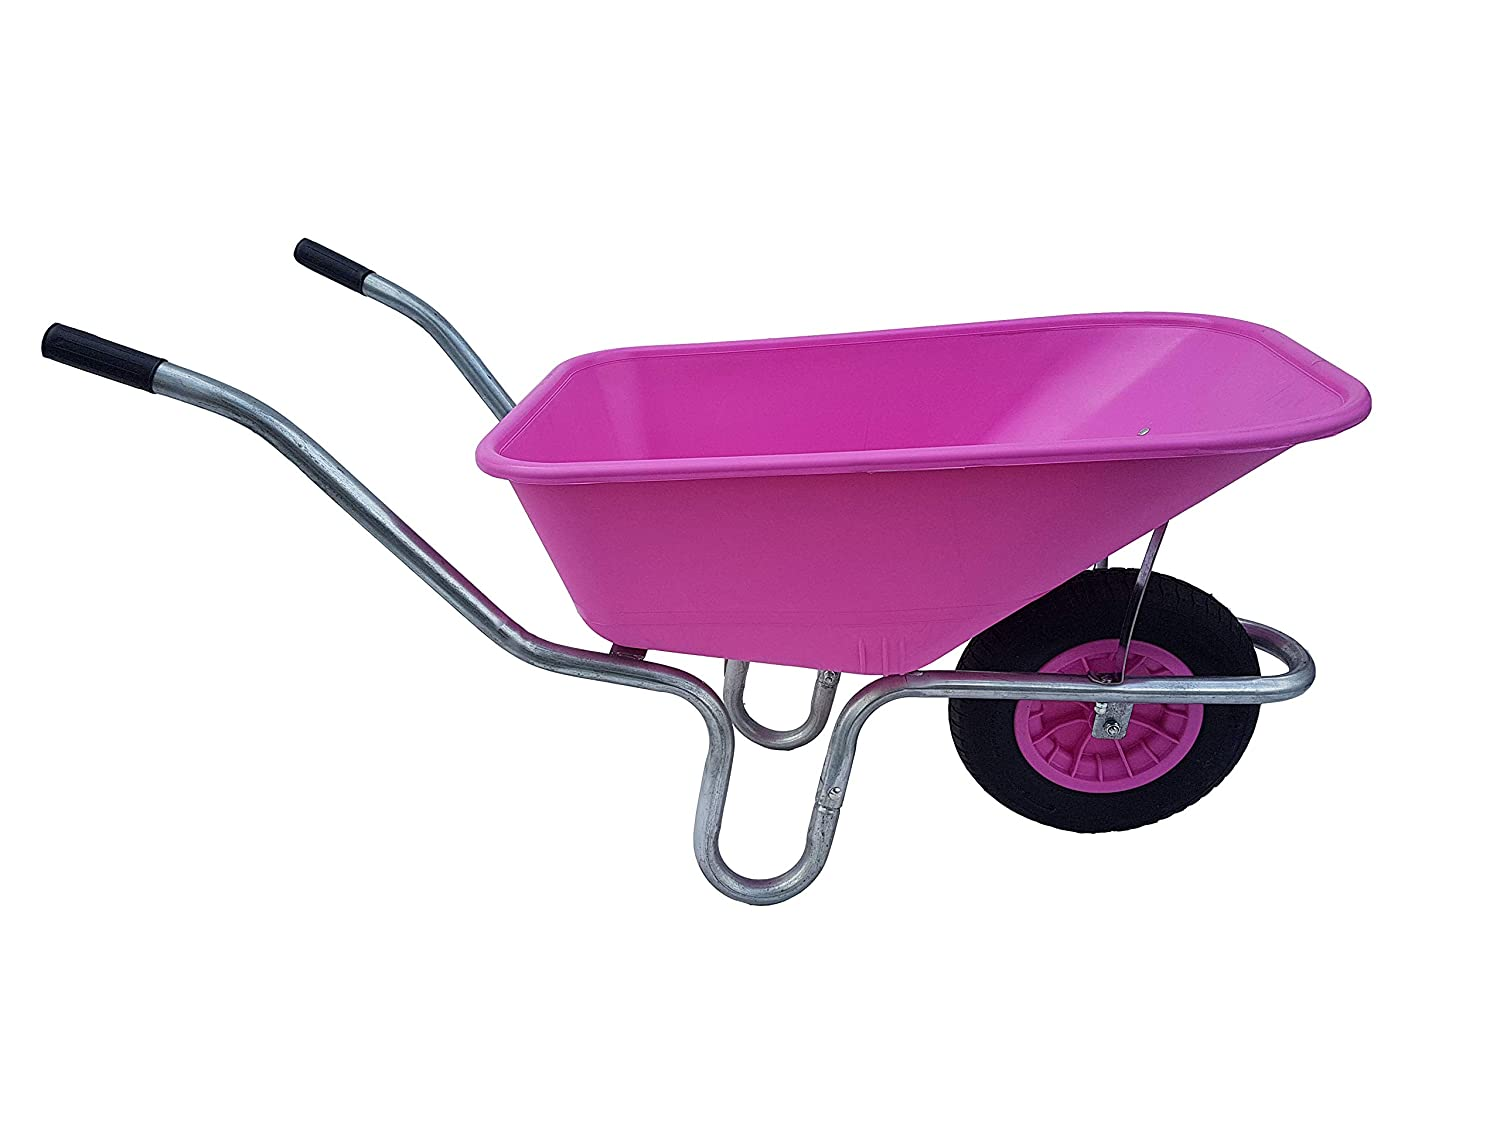 110 Litre Large PINK Plastic Wheelbarrow With Puncture Proof Foam Filled Wheel Ketoplastics